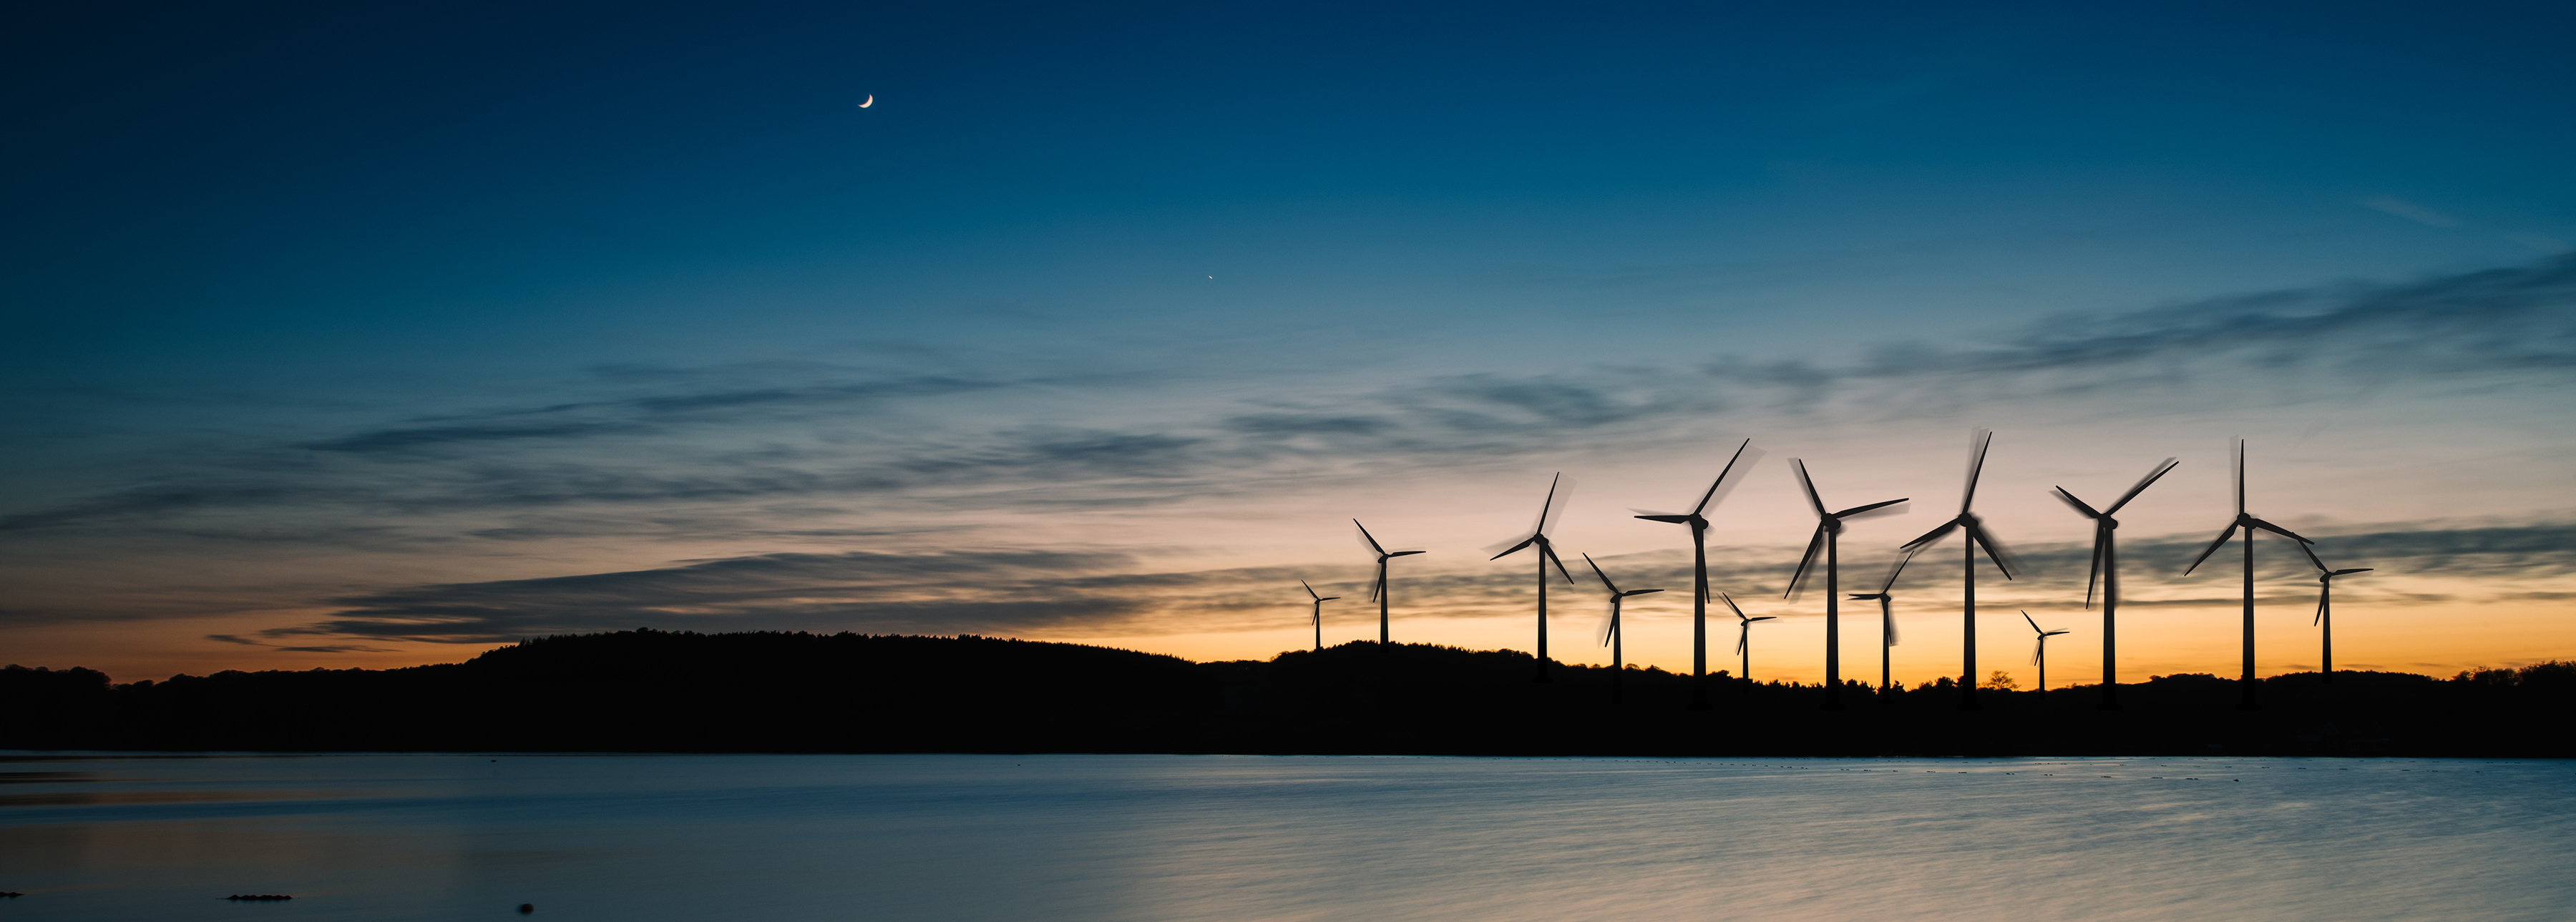 Wind turbines at night cropped